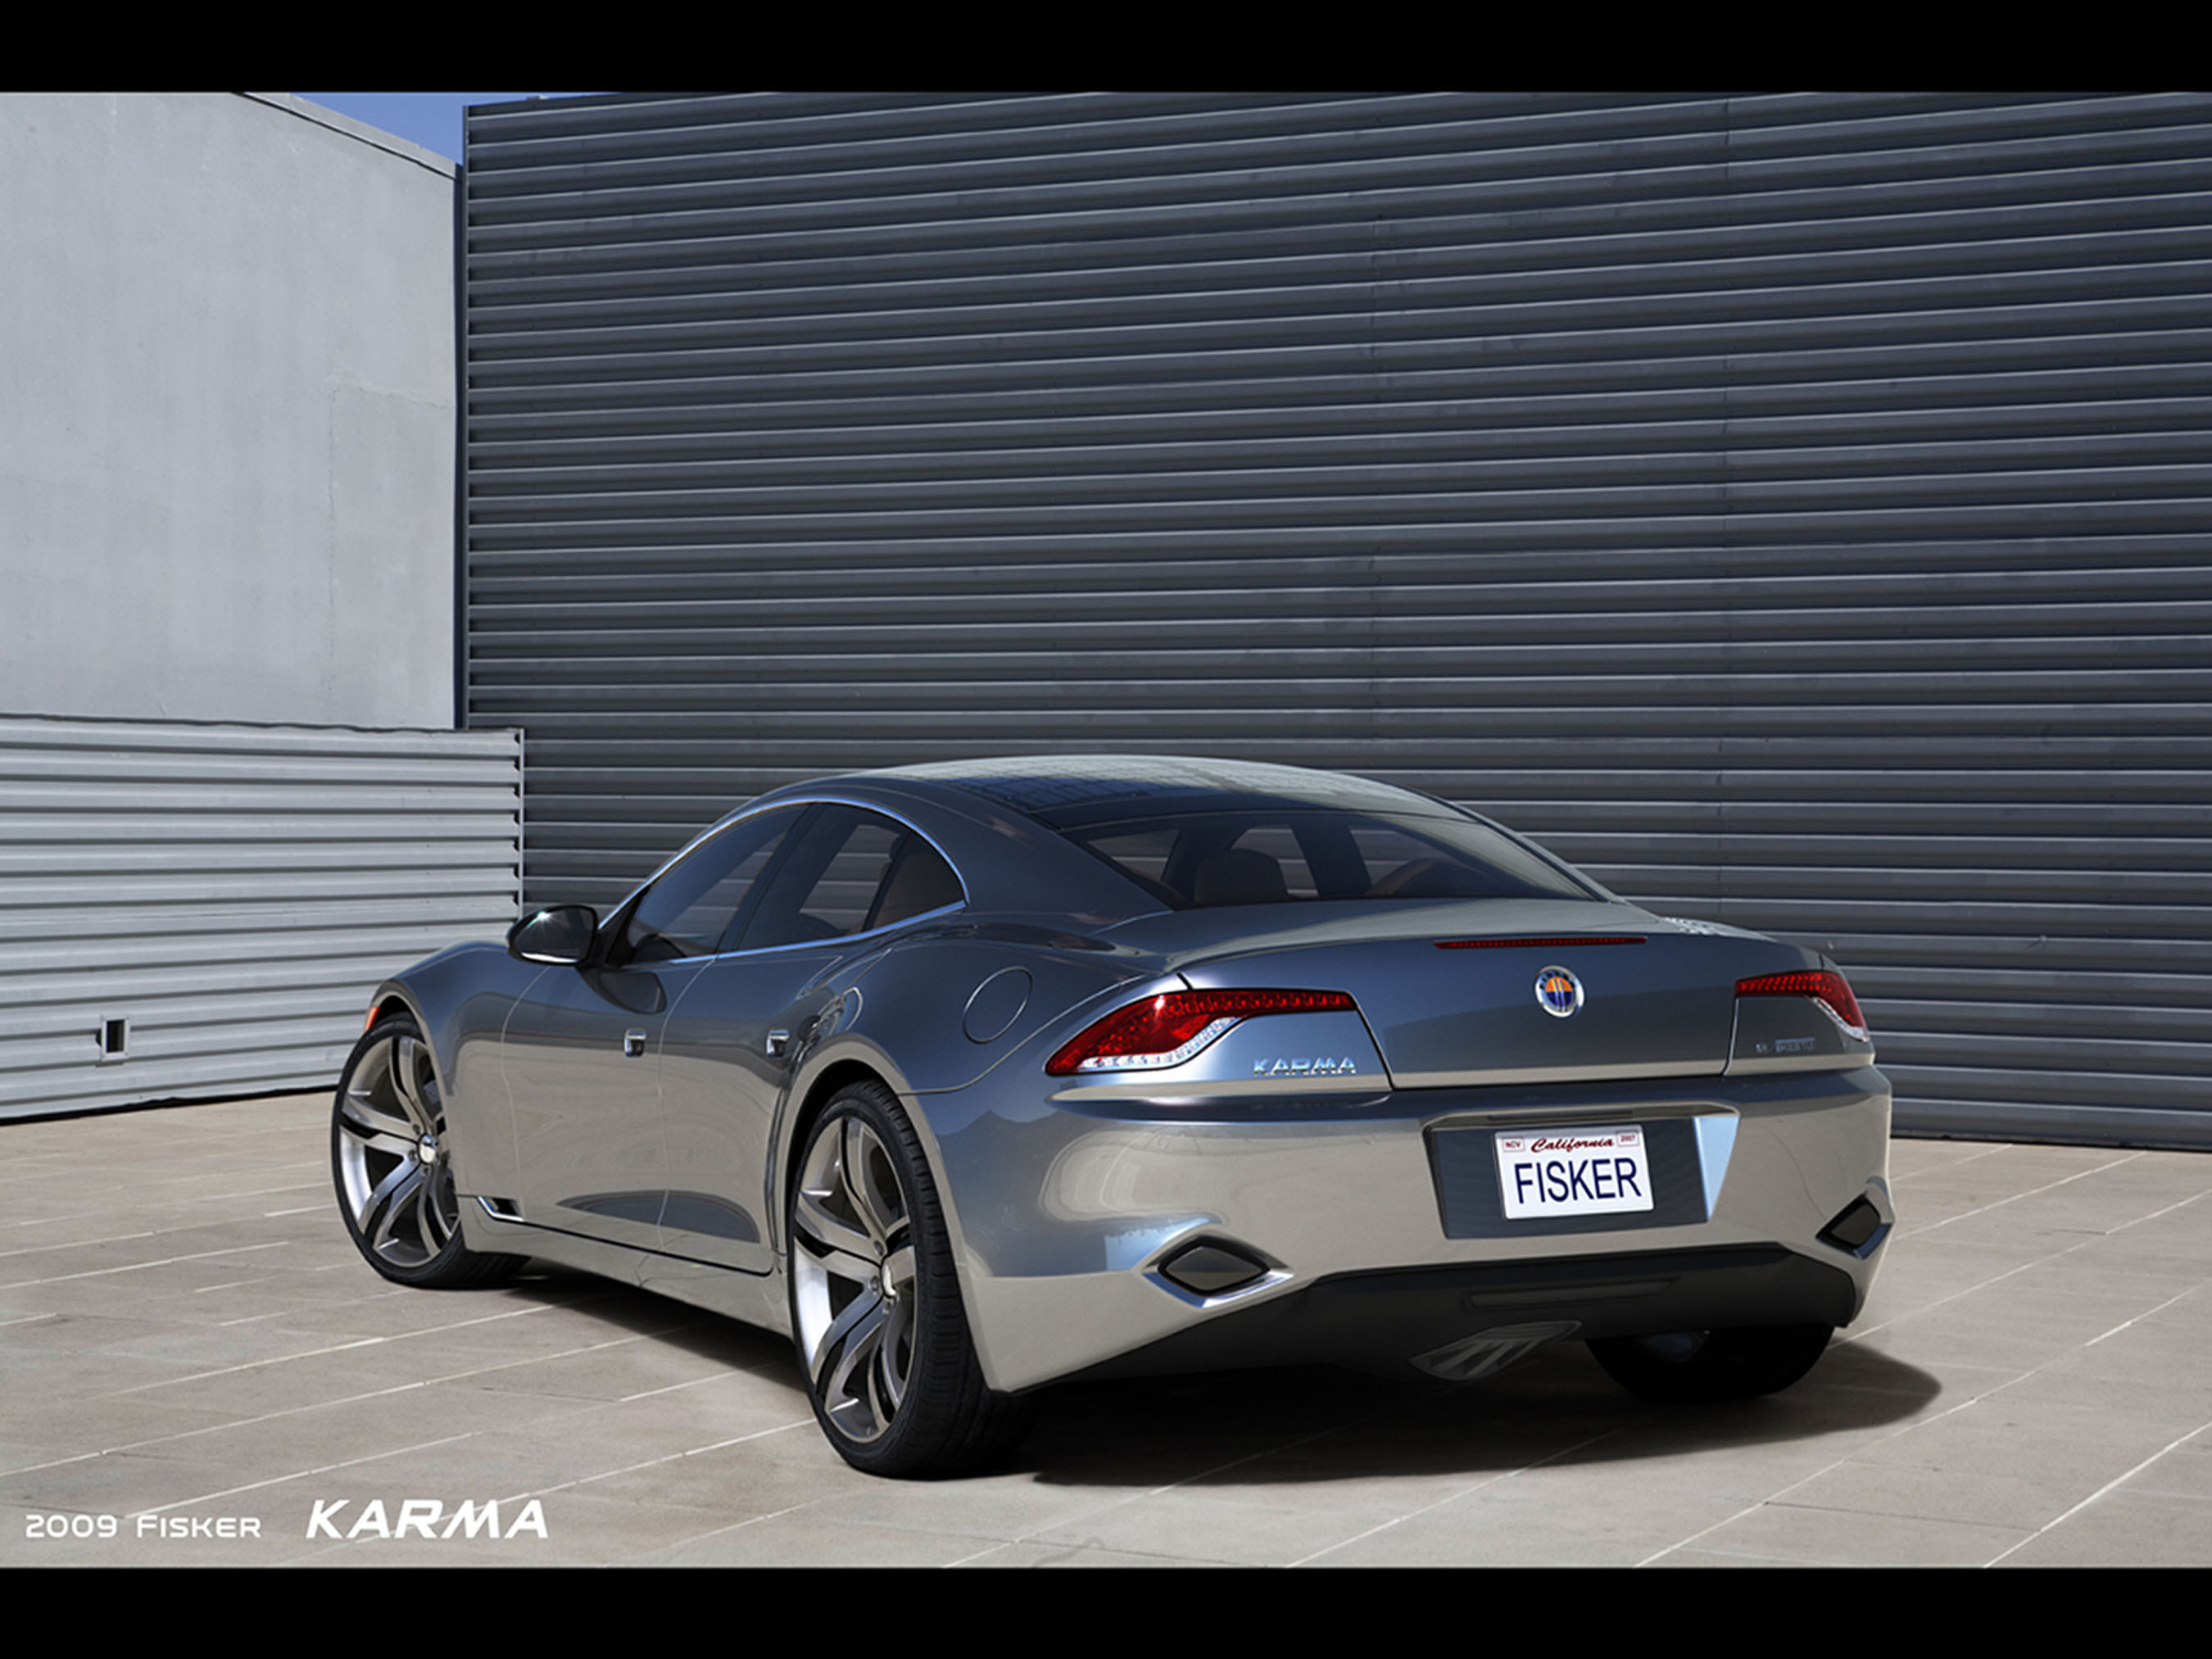 2009 fisker karma this time it 39 s real or so they say for Honda dealer wilmington de